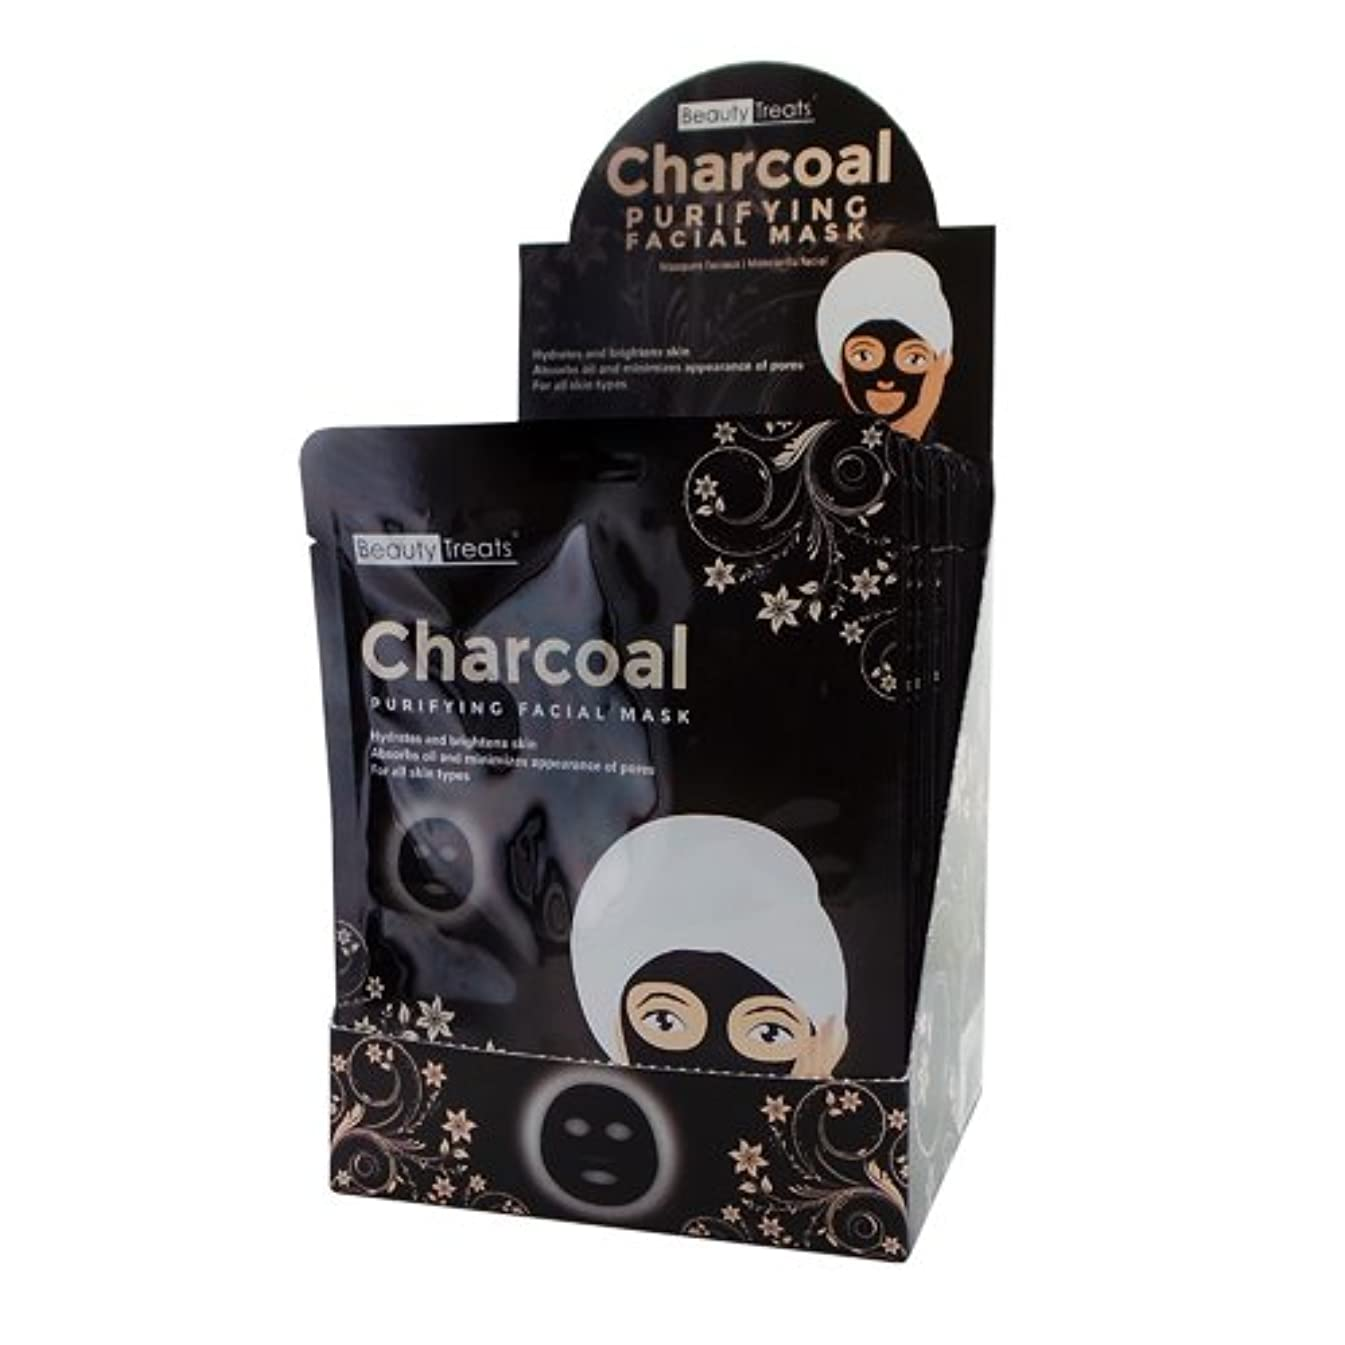 無傷撤回するうぬぼれたBEAUTY TREATS Charcoal Purifying Facial Mask Display Box - 24 Pieces (並行輸入品)